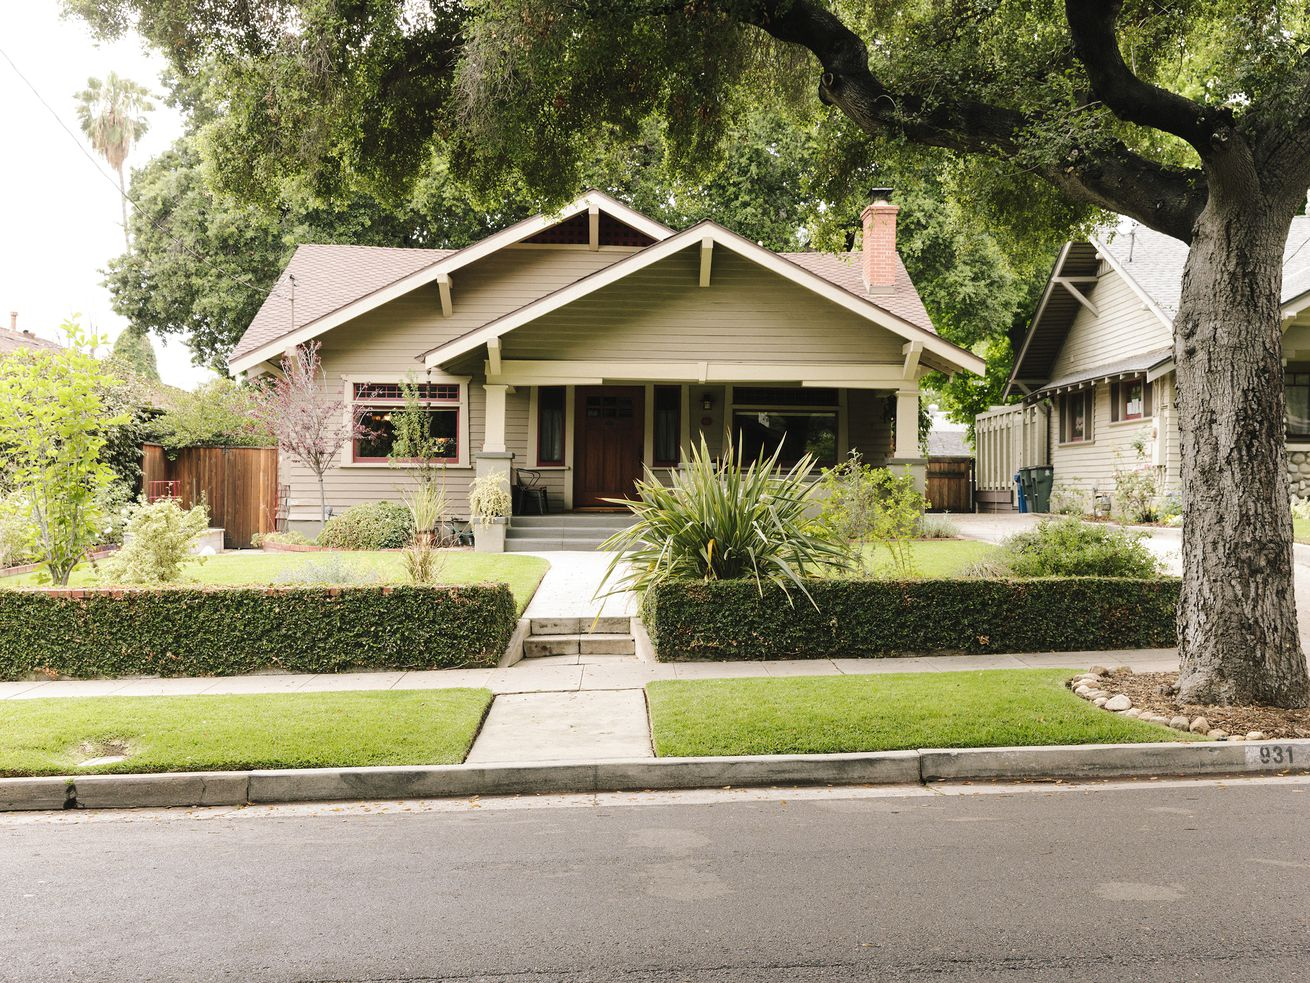 Single-family homes in LA County now take nearly two weeks longer to sell than they did a year ago, according to the California Association of Realtors.